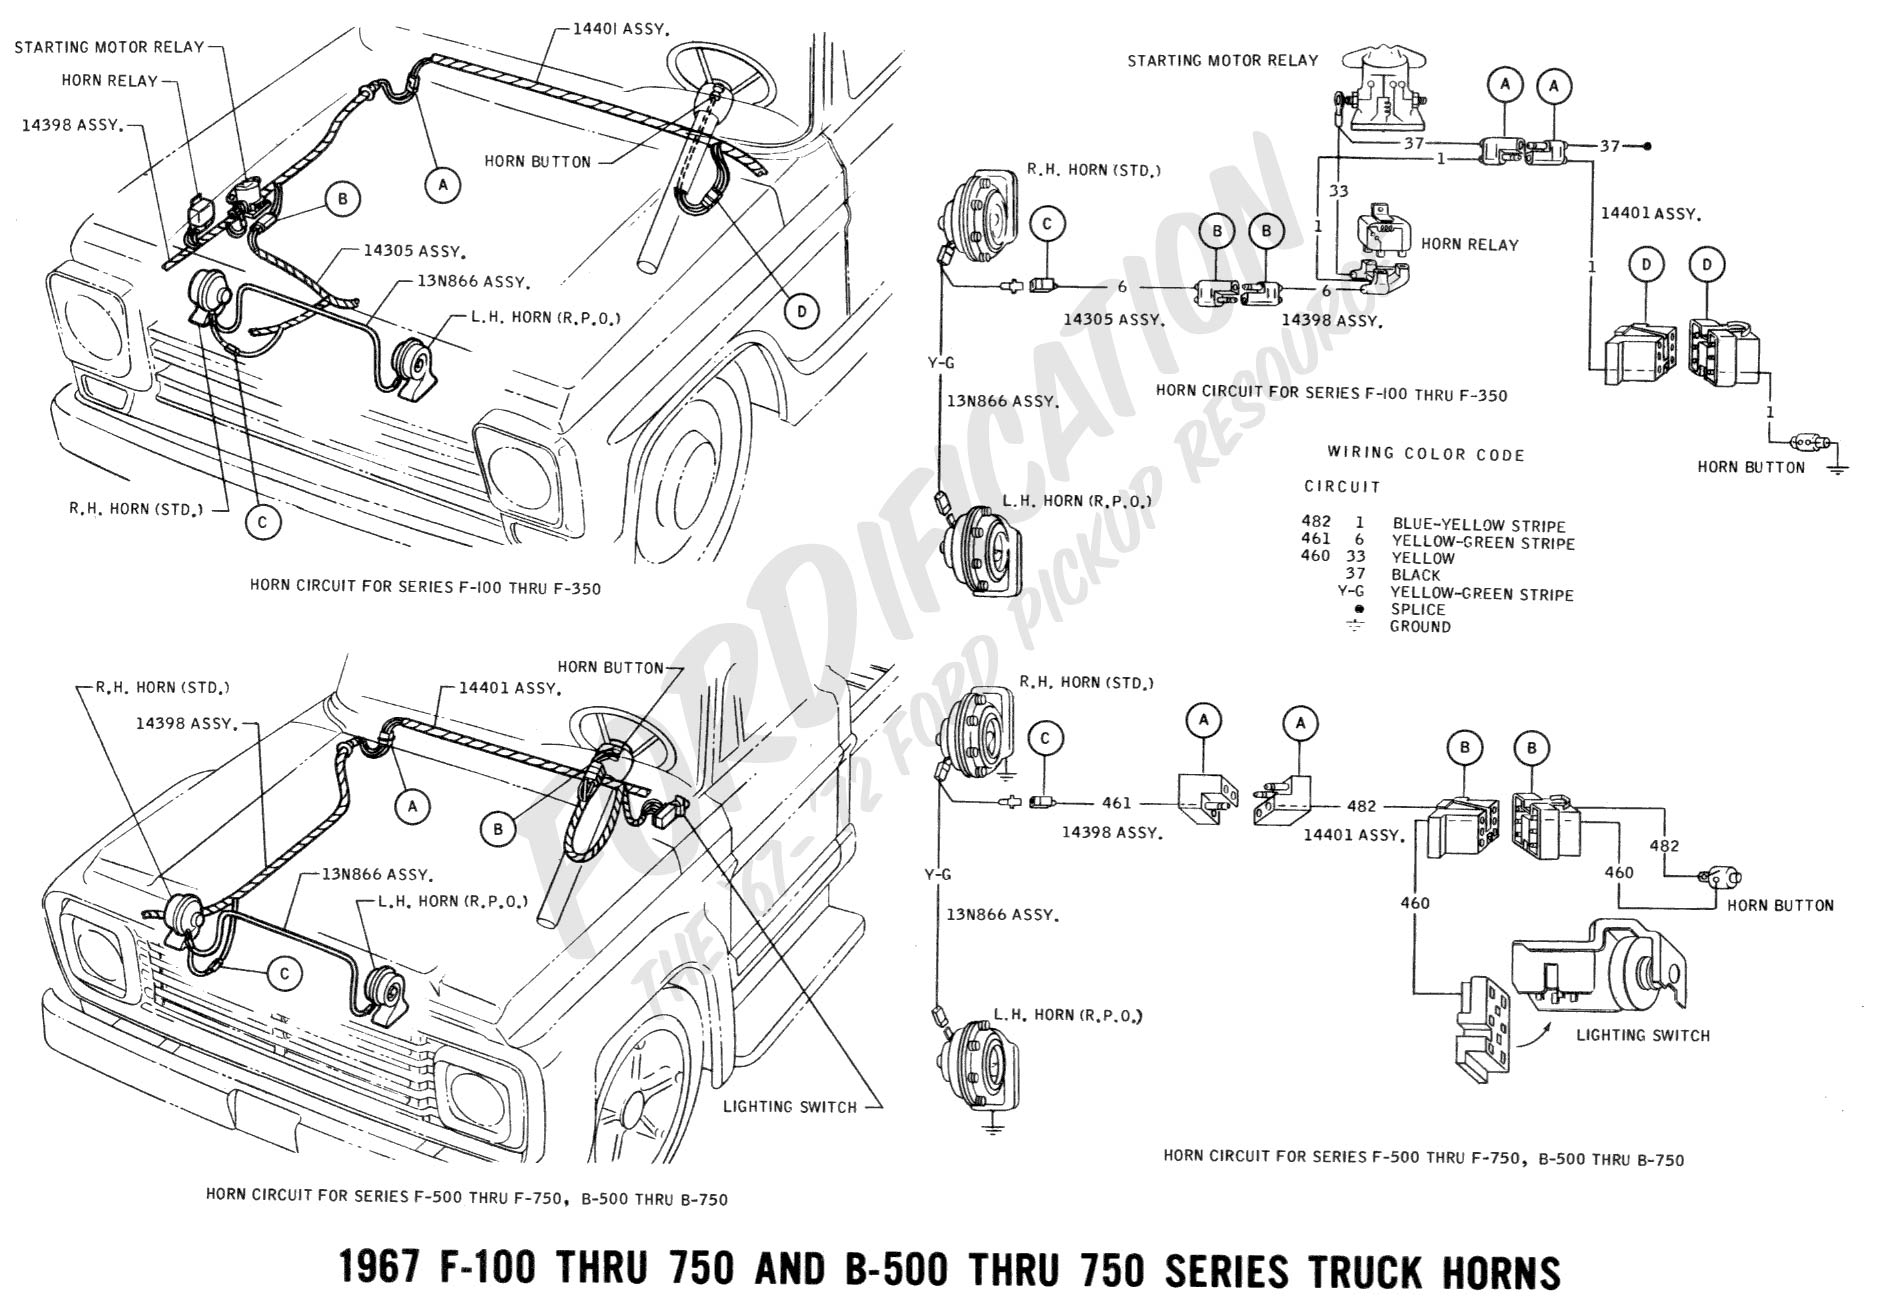 Ford Box Truck Wiring Diagrams on ford alternator wiring diagram, ford f-150 7-way wiring diagram, ford truck wiring harness, ford towing package wiring diagram, ford radio wiring diagram, ford schematics, ford wiring color codes, ford f650 wiring diagram, 1996 ford f 150 diagrams, ford excursion wiring diagram, ford bronco wiring diagram, ford truck electrical diagrams, ford voltage regulator diagram, ford truck brake diagrams, ford e350 wiring diagram, ford explorer wiring diagram, ford econoline wiring-diagram, ford think wiring diagram, ford l9000 wiring-diagram, ford f-250 wiring diagram,